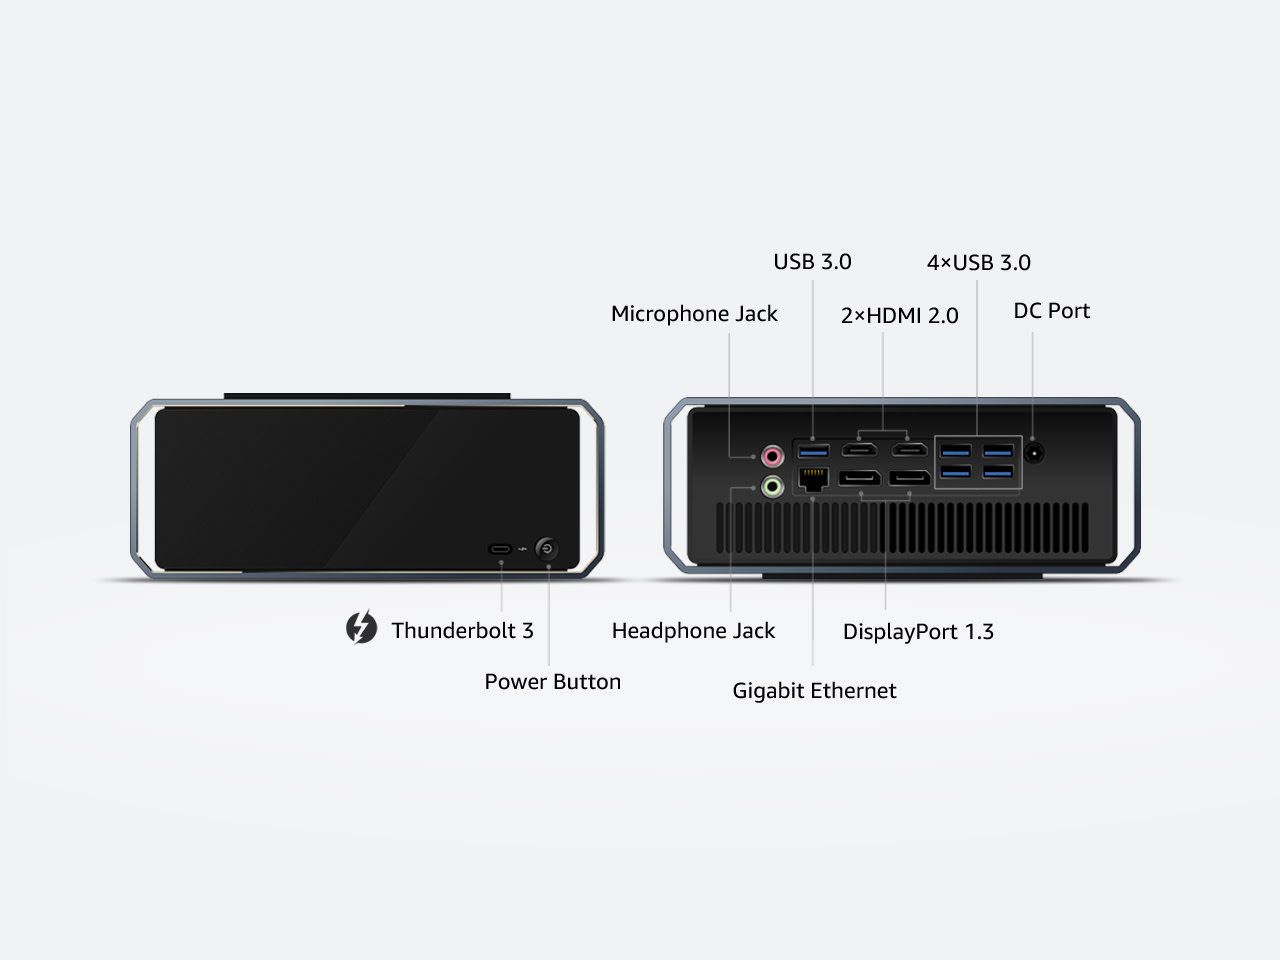 Designed with Thunderbolt 3, USB 3.0, Gigabit Ethernet, HDMI 2.0, and DisplayPort 1.3, Chuwi HiGame can equip you with all kinds of connections for different types of peripherals.